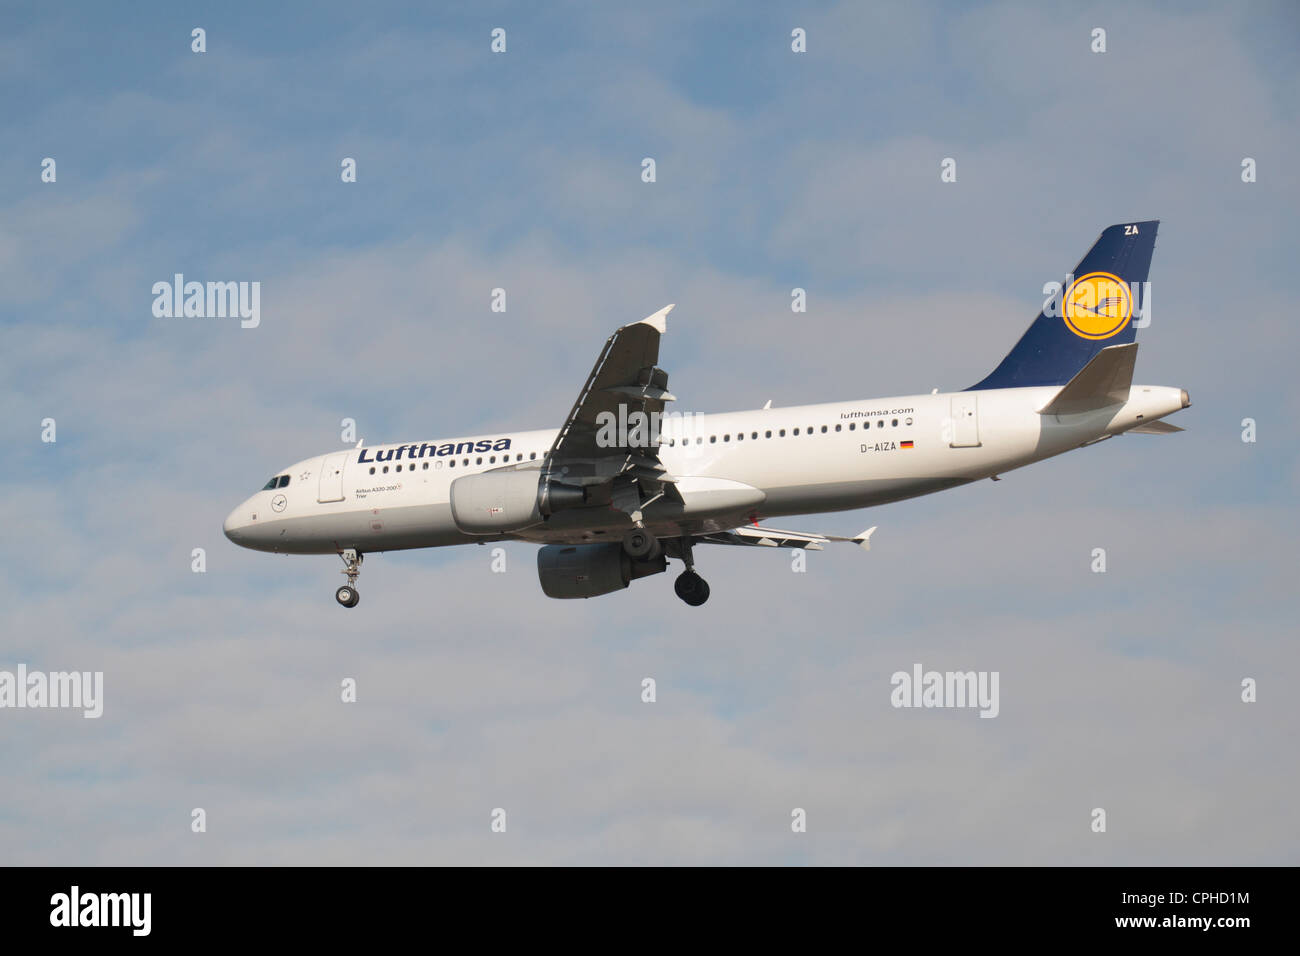 A Lufthansa  Airbus A320-214 (D-AIZA) about to land at Heathrow Airport, London, UK. - Stock Image